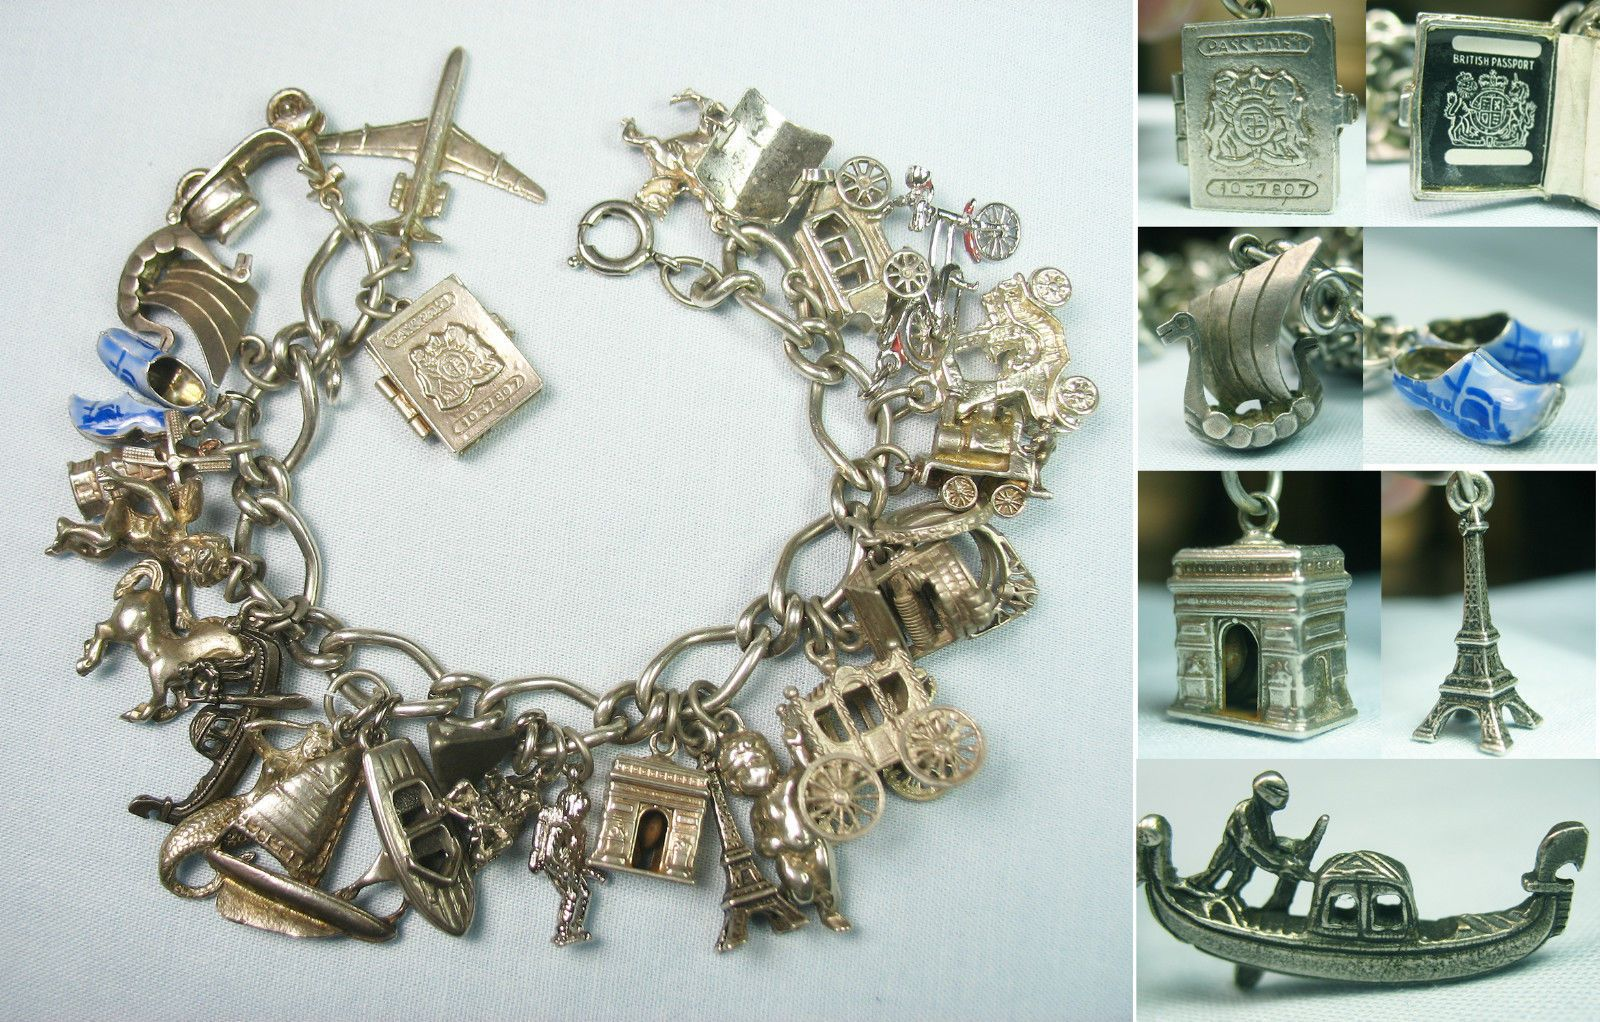 made from vintage vacation charm bracelet Upcycled Recycled Travel Vintage Jewelry Unique Handmade Silver World Traveler Charm Bracelet